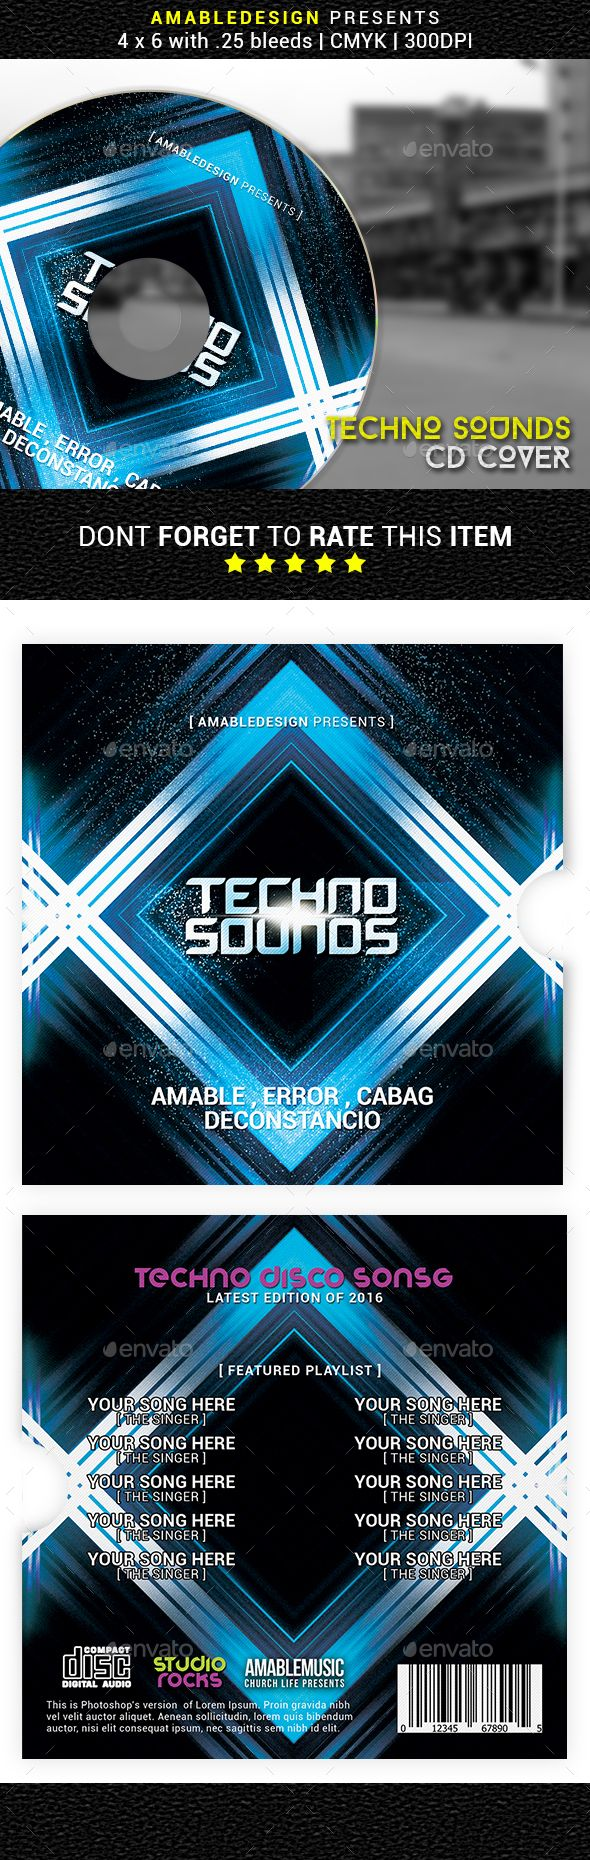 Techno Sounds CD Cover